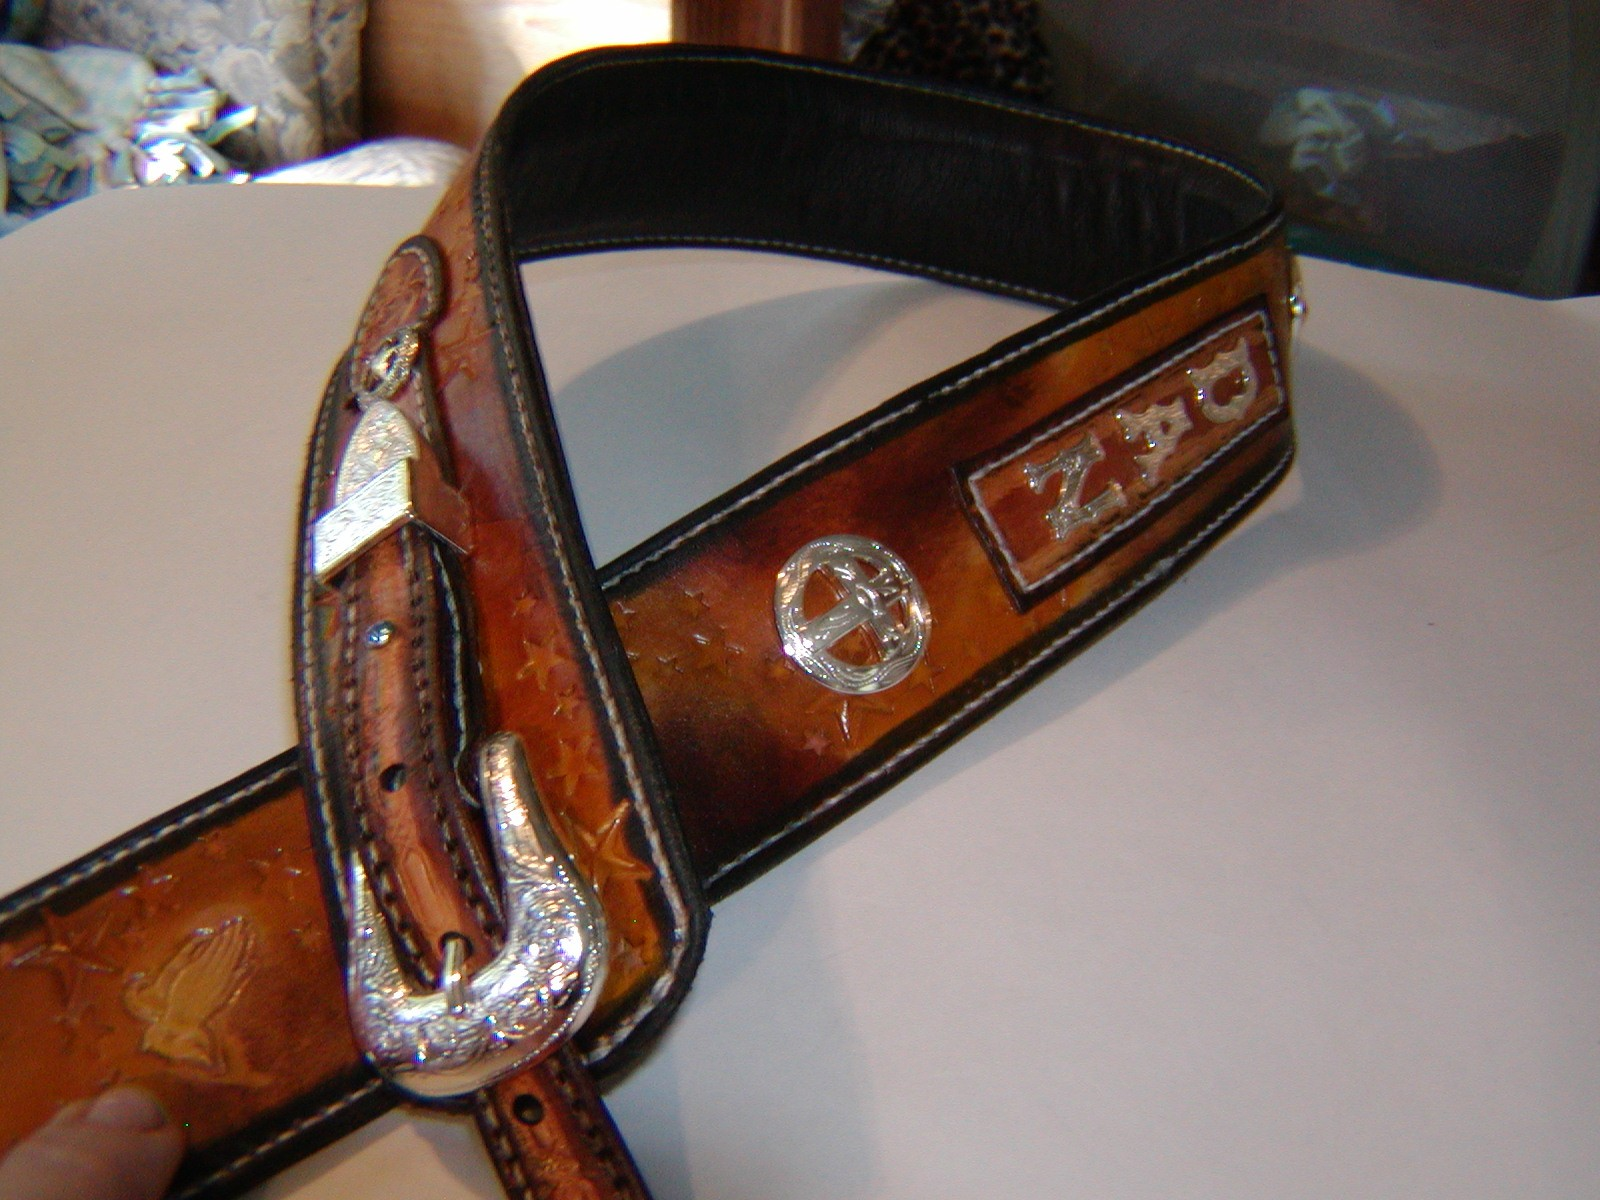 Guitar Straps Leather : like leathers leather guitar straps ~ Russianpoet.info Haus und Dekorationen